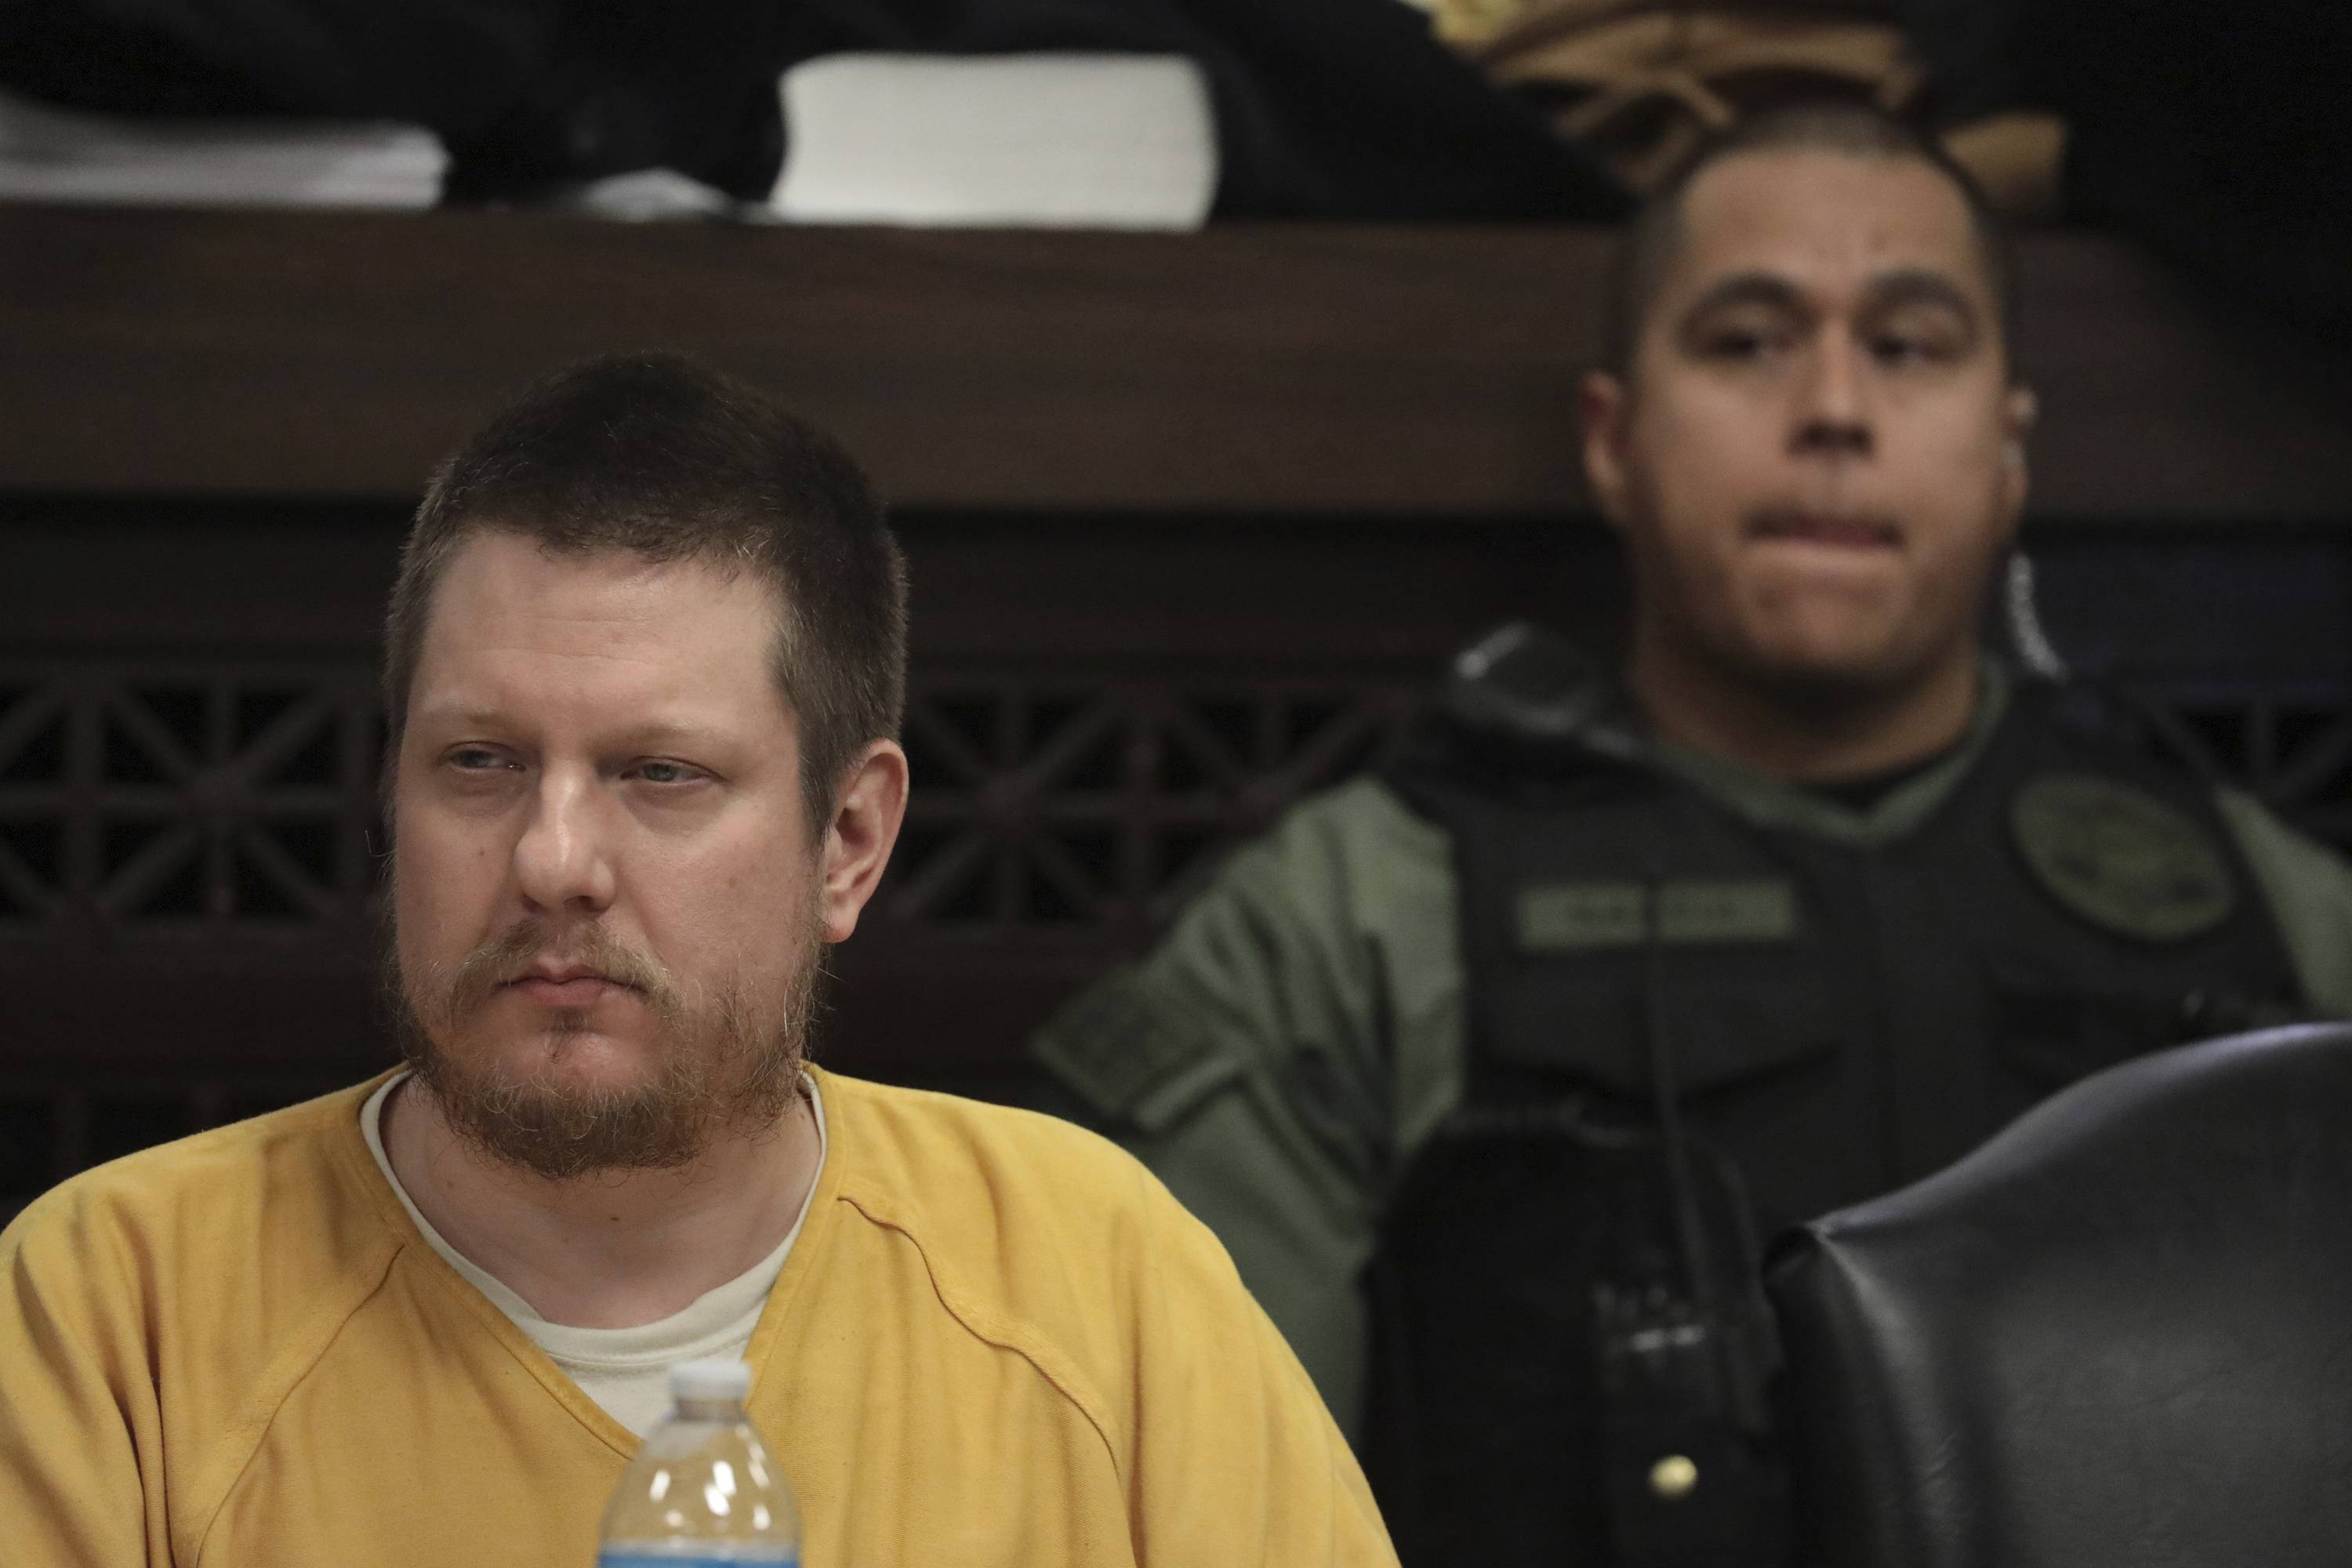 Former Chicago police officer Jason Van Dyke awaits his sentence Friday at the Leighton Criminal Court Building in Chicago. Van Dyke was convicted last year of second-degree murder and 16 counts of aggravated battery — one for each bullet fired at Laquan McDonald.